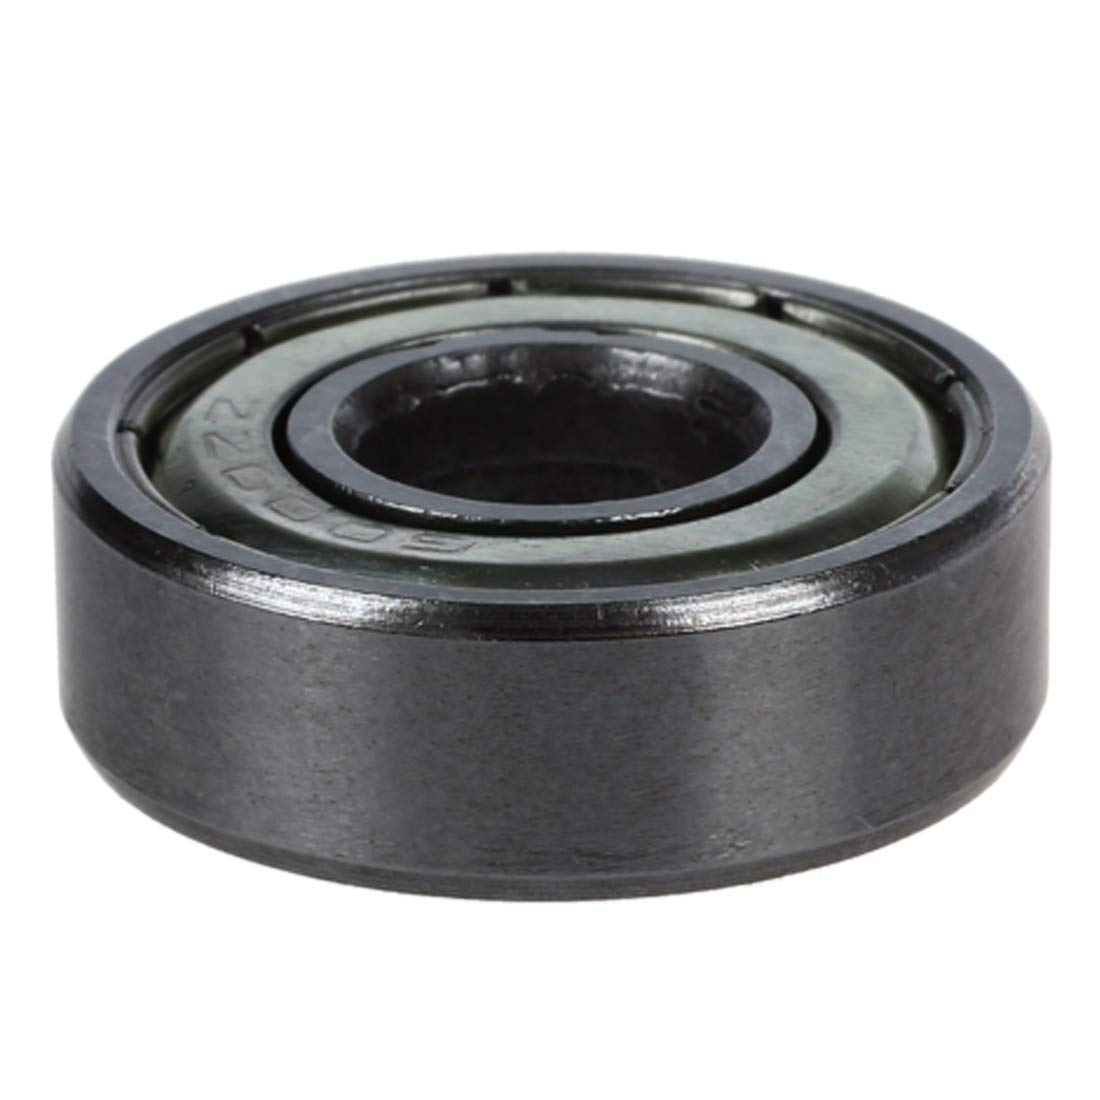 0.25 x 0.125 Keyway 3.75 OD Inch Lovejoy 12107 Size L150 Standard Jaw Coupling Hub 3708 in-lbs Max Nominal Torque Sintered Iron 1.75 Length Through Bore 1 Bore